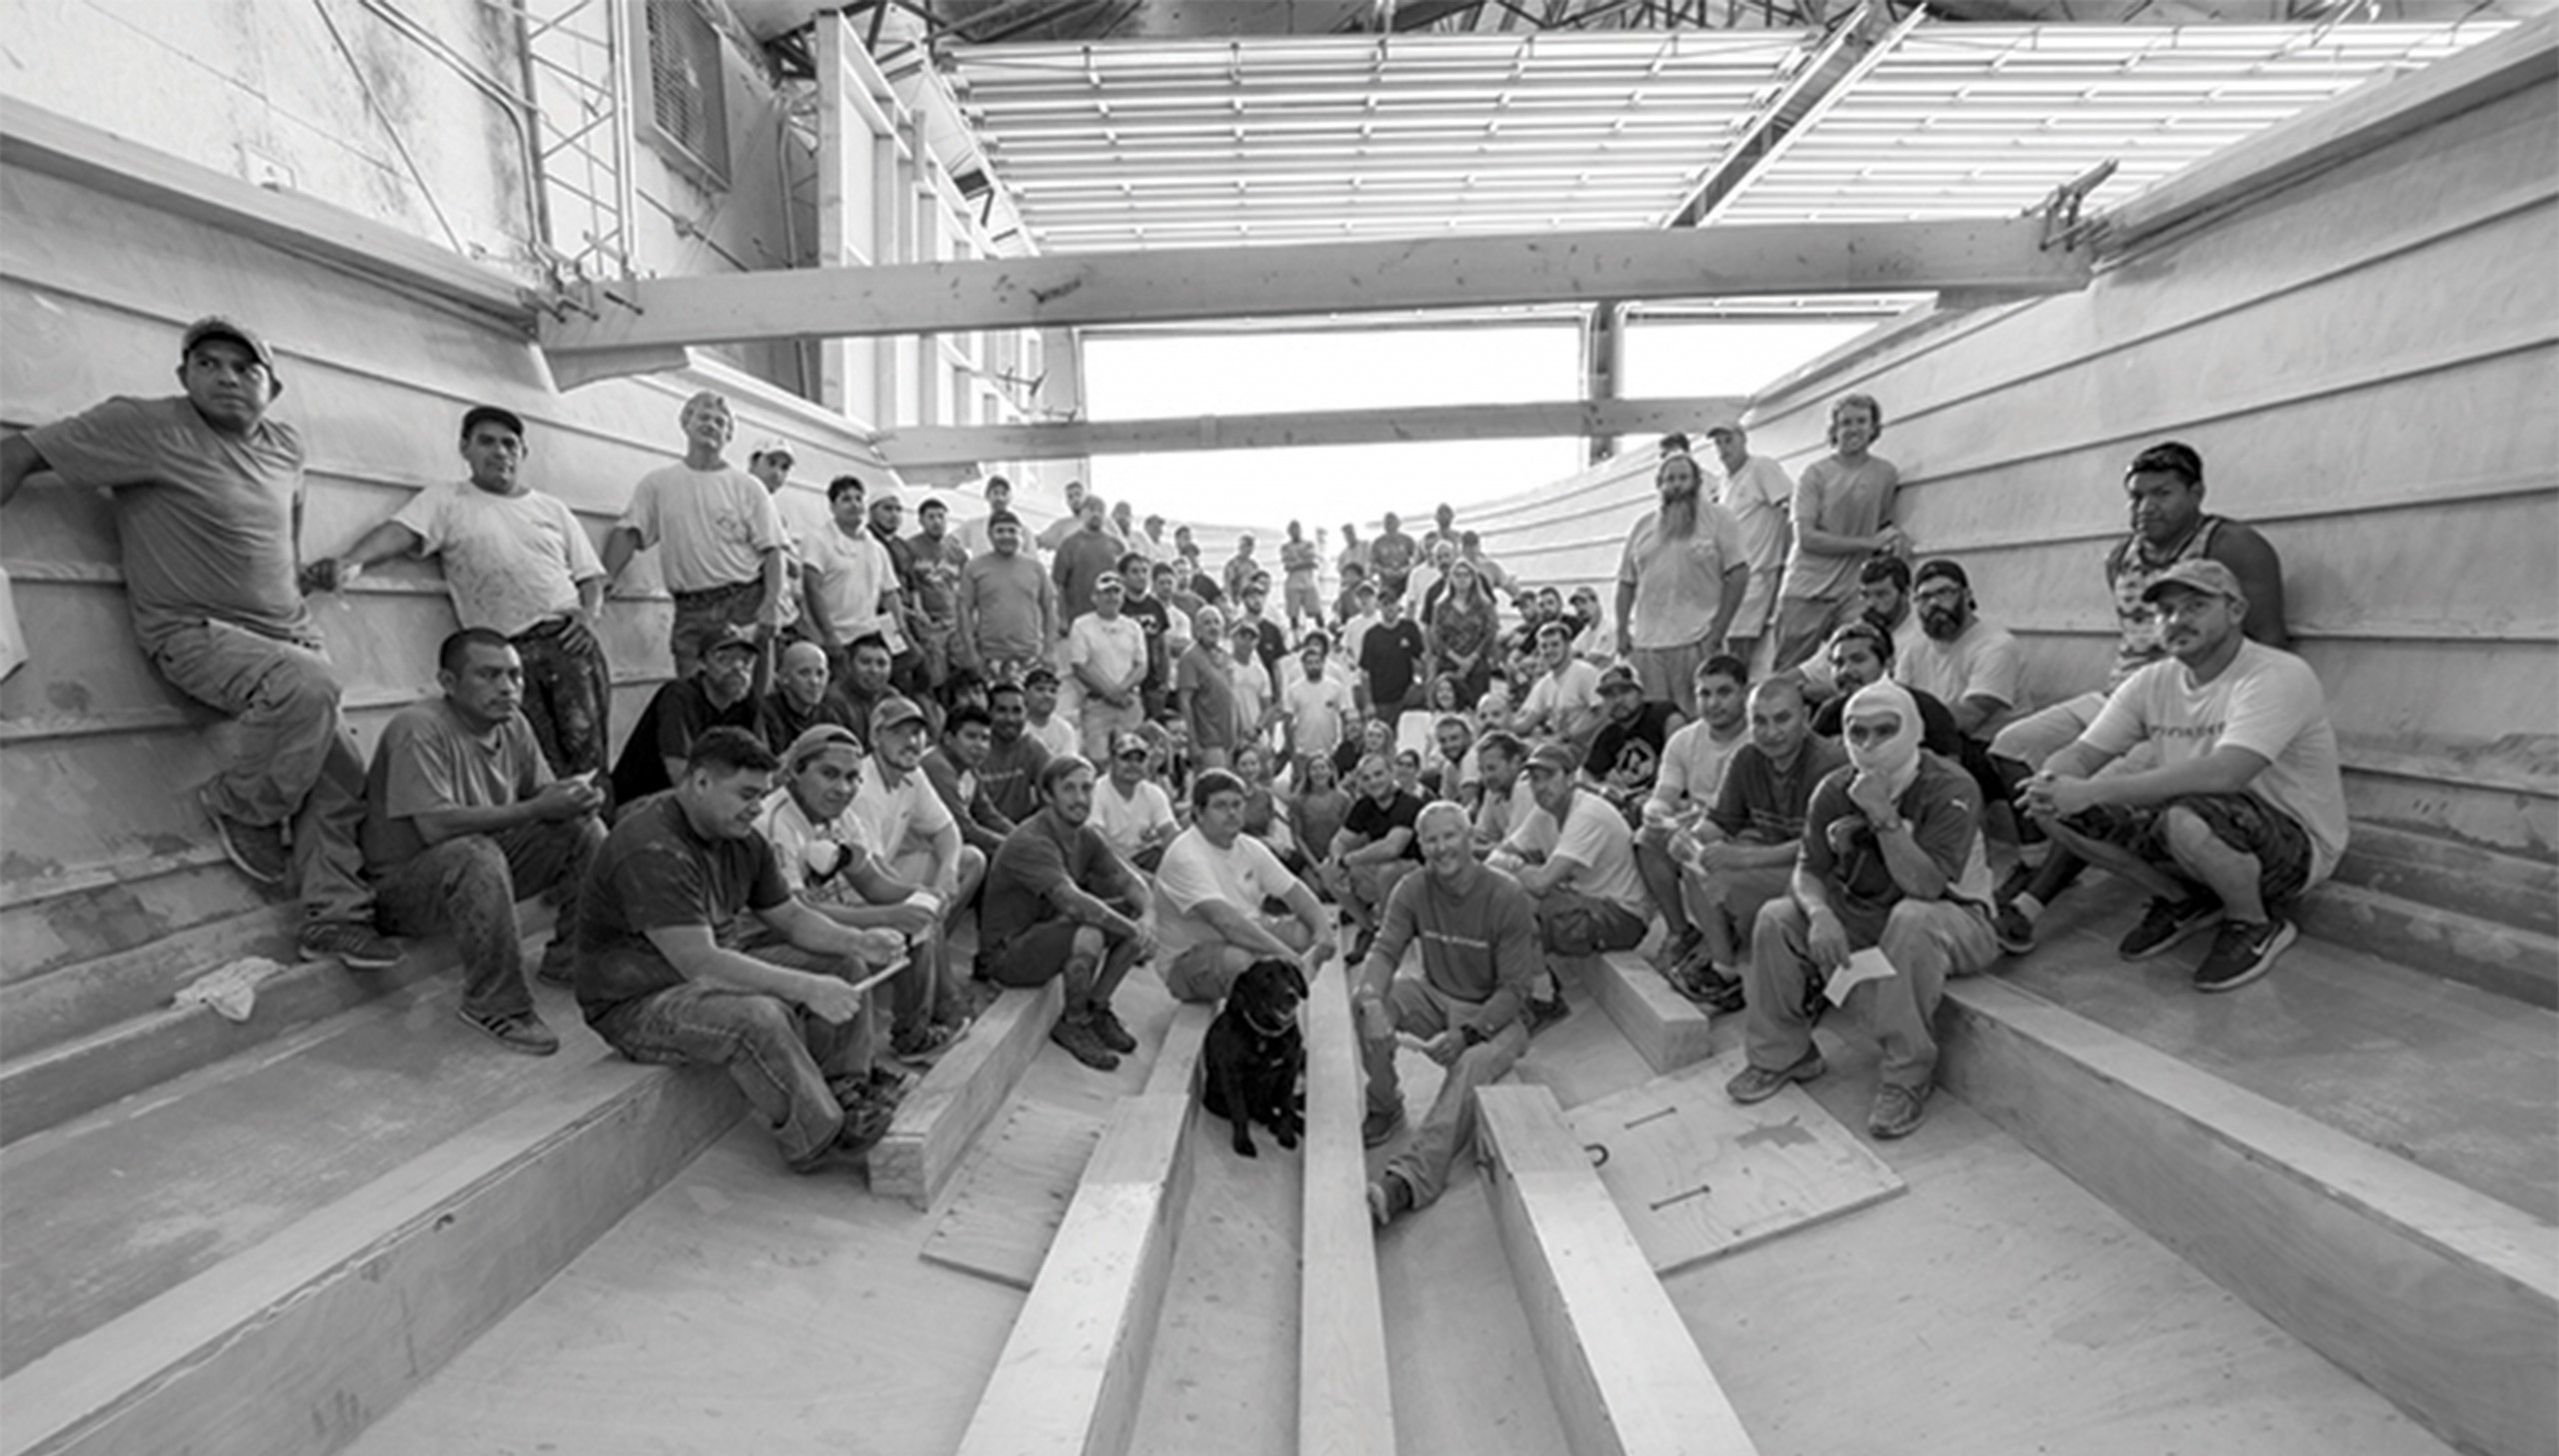 Black and white image of Bayliss Boatworks workers posing for a picture inside a hull